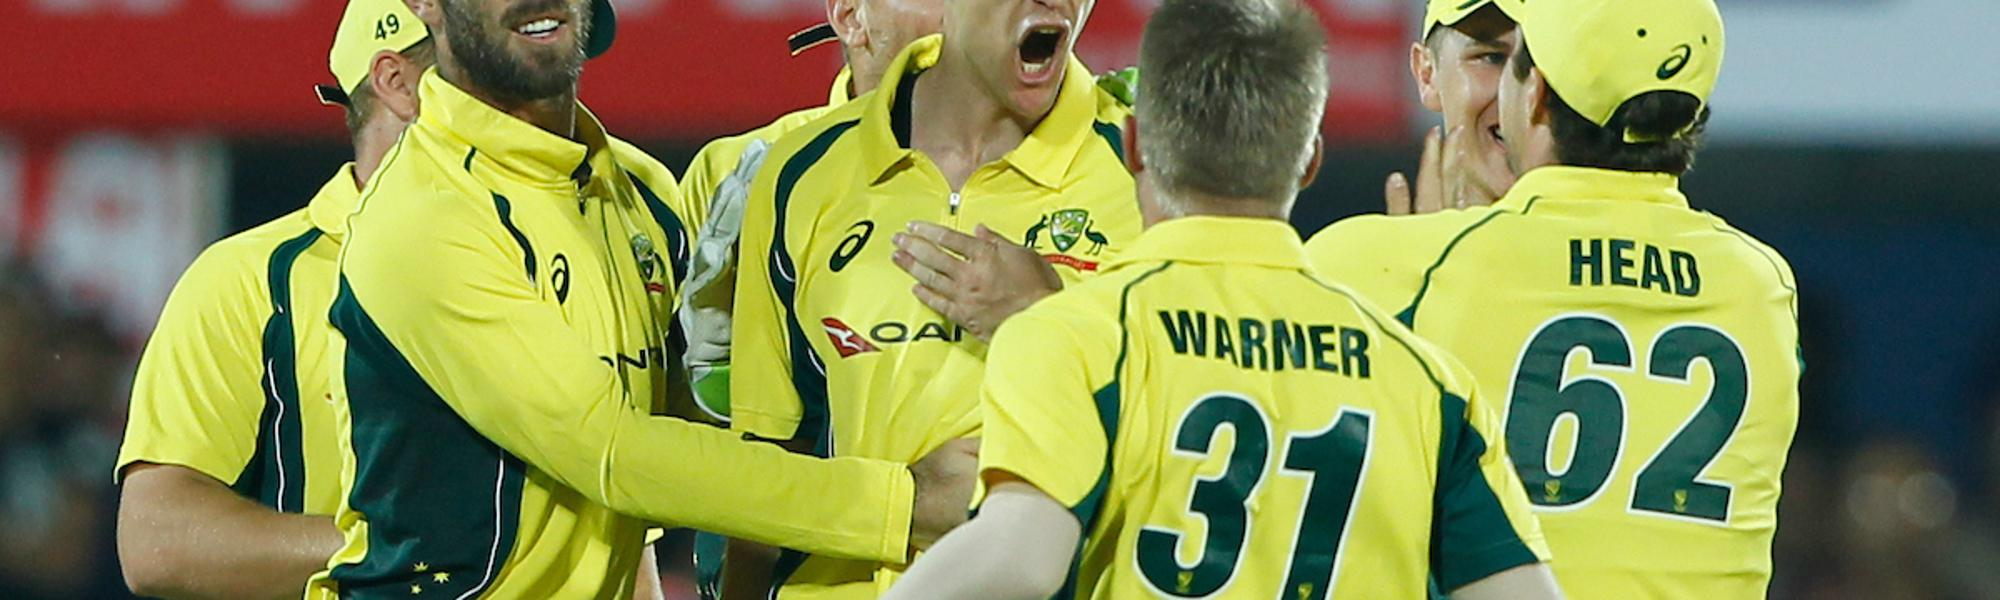 Jason Behrendorff's bowling in Guwahati provided a glimmer of hope for Australia in this limited over tour to redeem themselves.